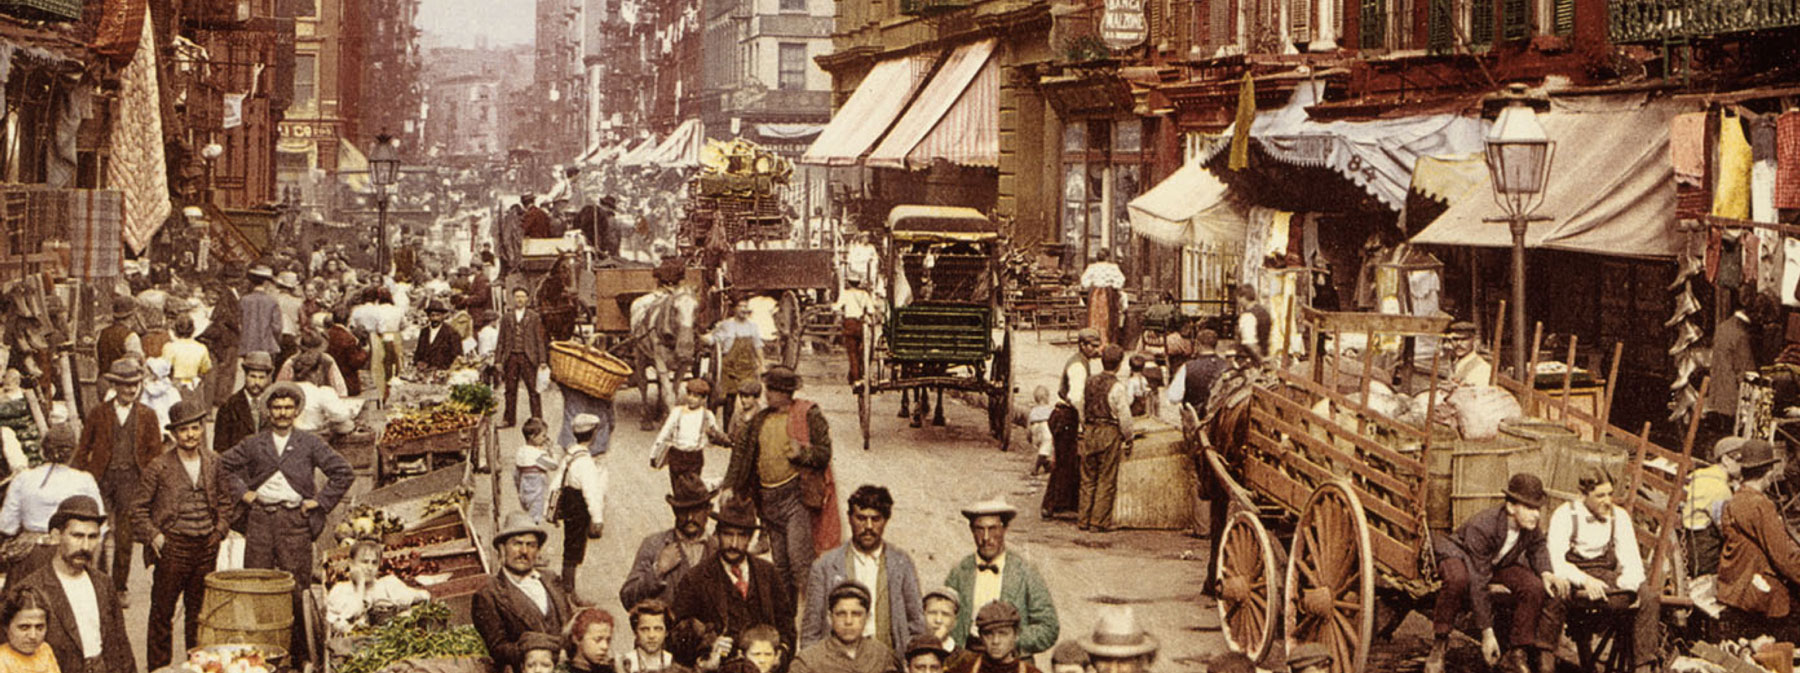 Artist rendering of Mulberry St c.1900